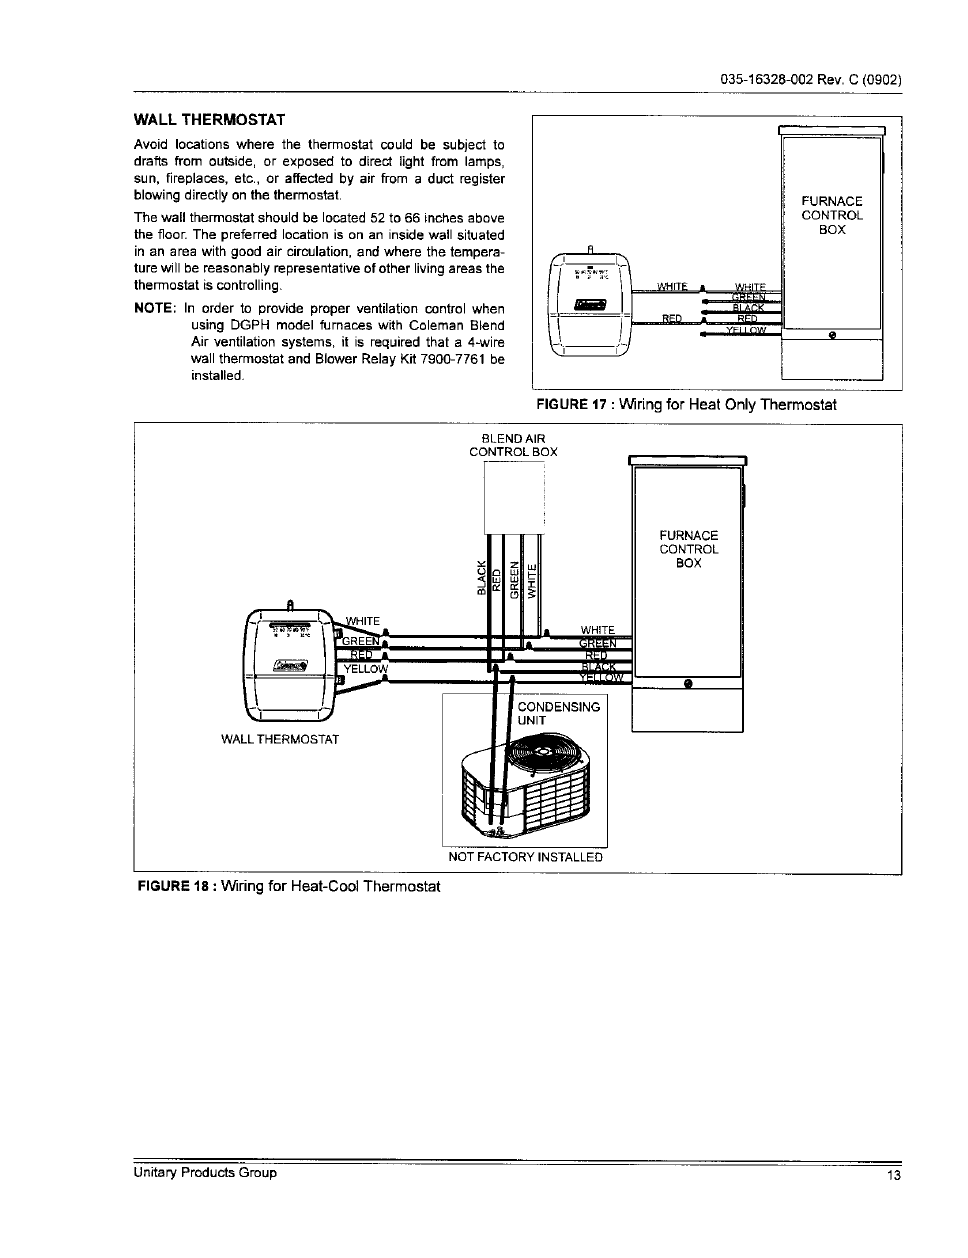 York Furnace Manual Diamond 80 Wiring Diagram Dgaao9obdta User S Page 13 Free Pdf Download 28 Pages Rh Manualagent Com Tg9s Yp9c